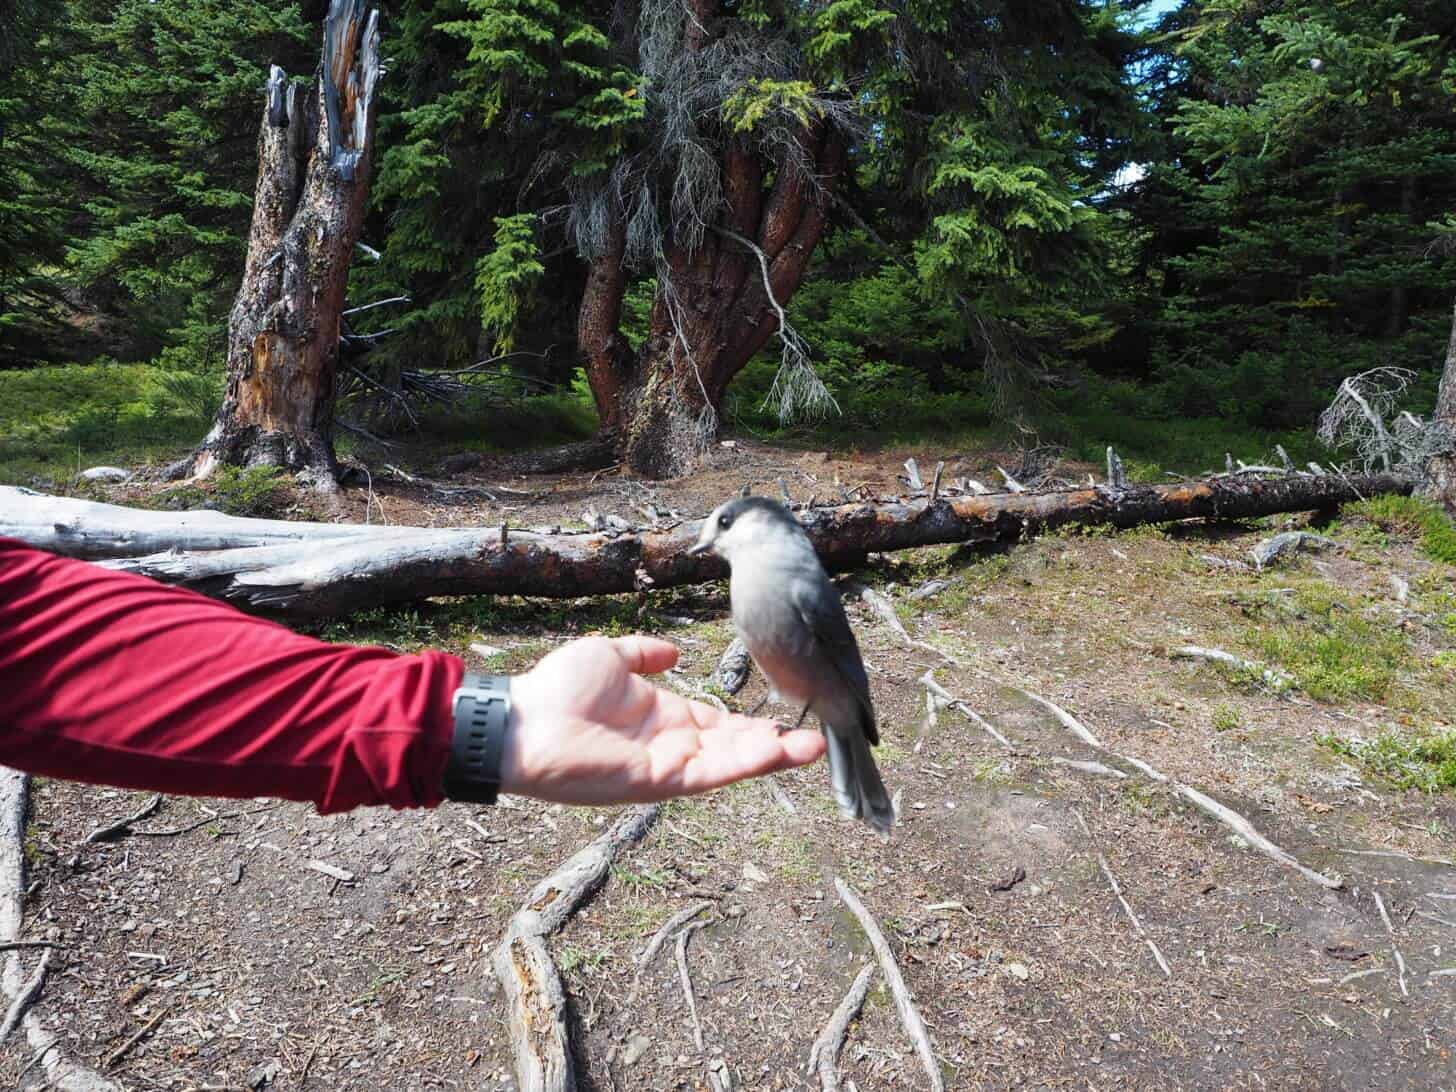 Skyline Trail: Little Shovel Campsite was home to some habituated Grey Jays.